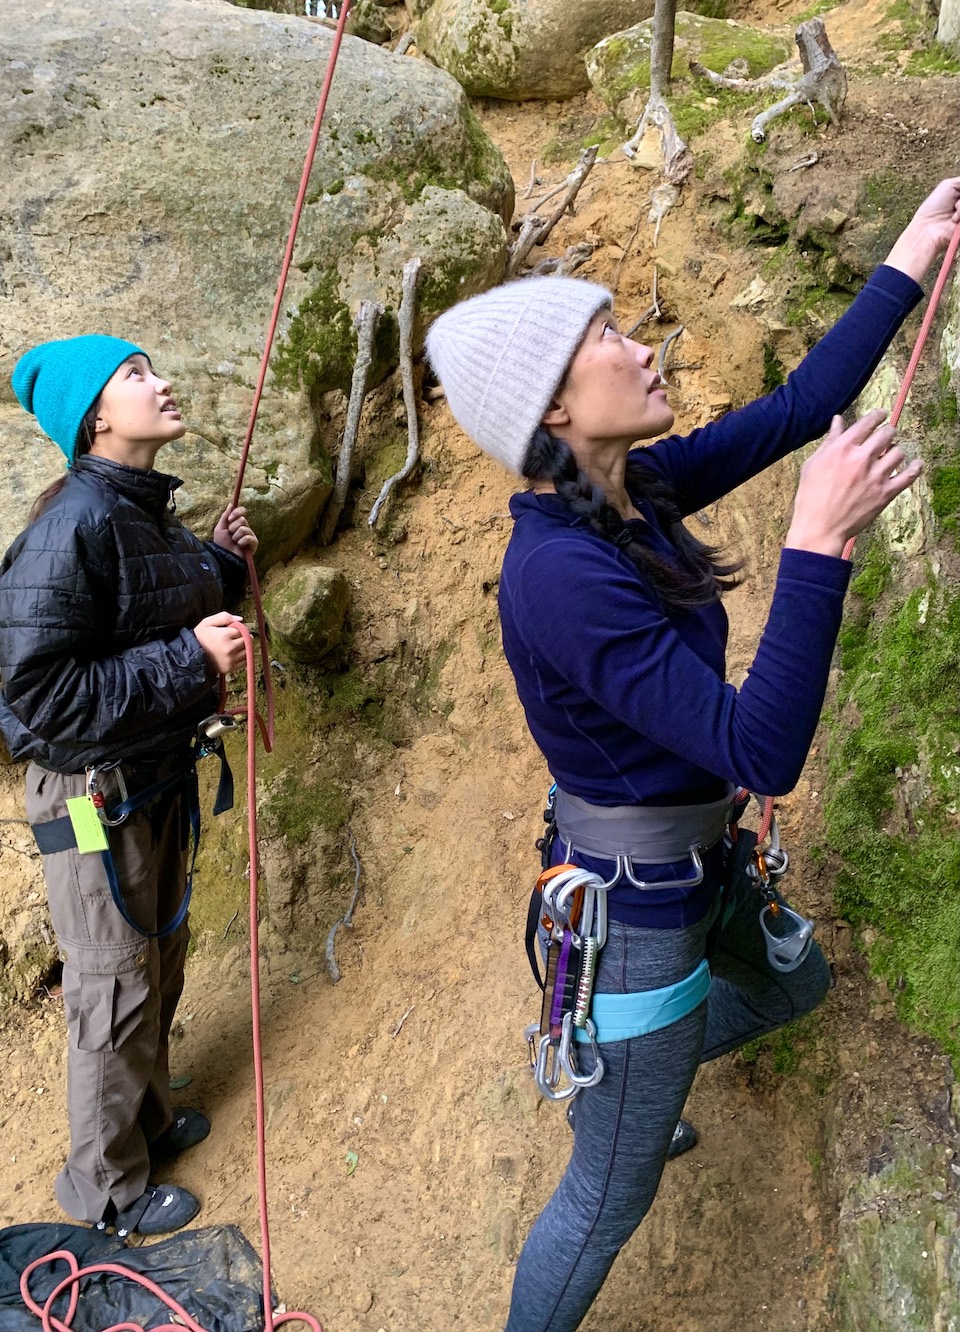 Shane and her daughter rock climbing